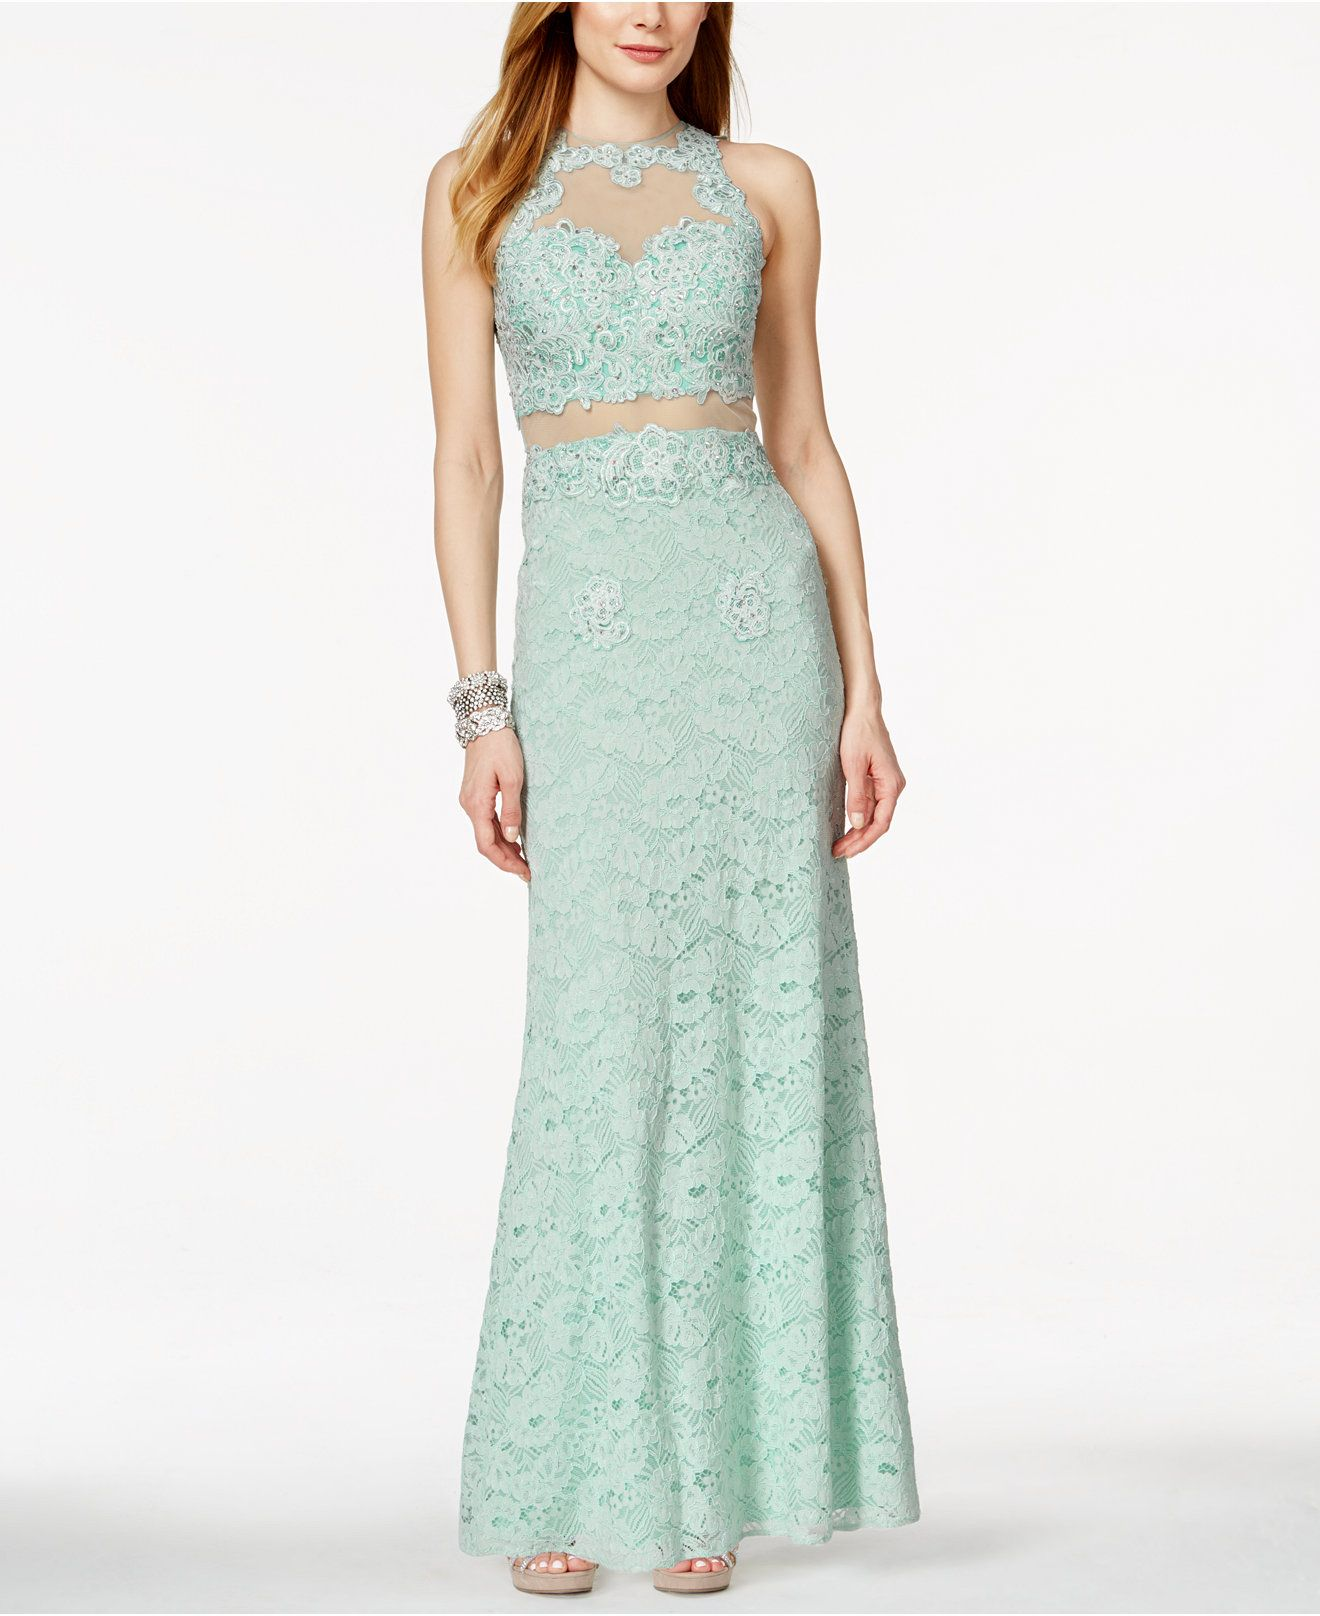 Betsy & Adam Sleeveless Lace Illusion Gown - Juniors Shop All Prom ...